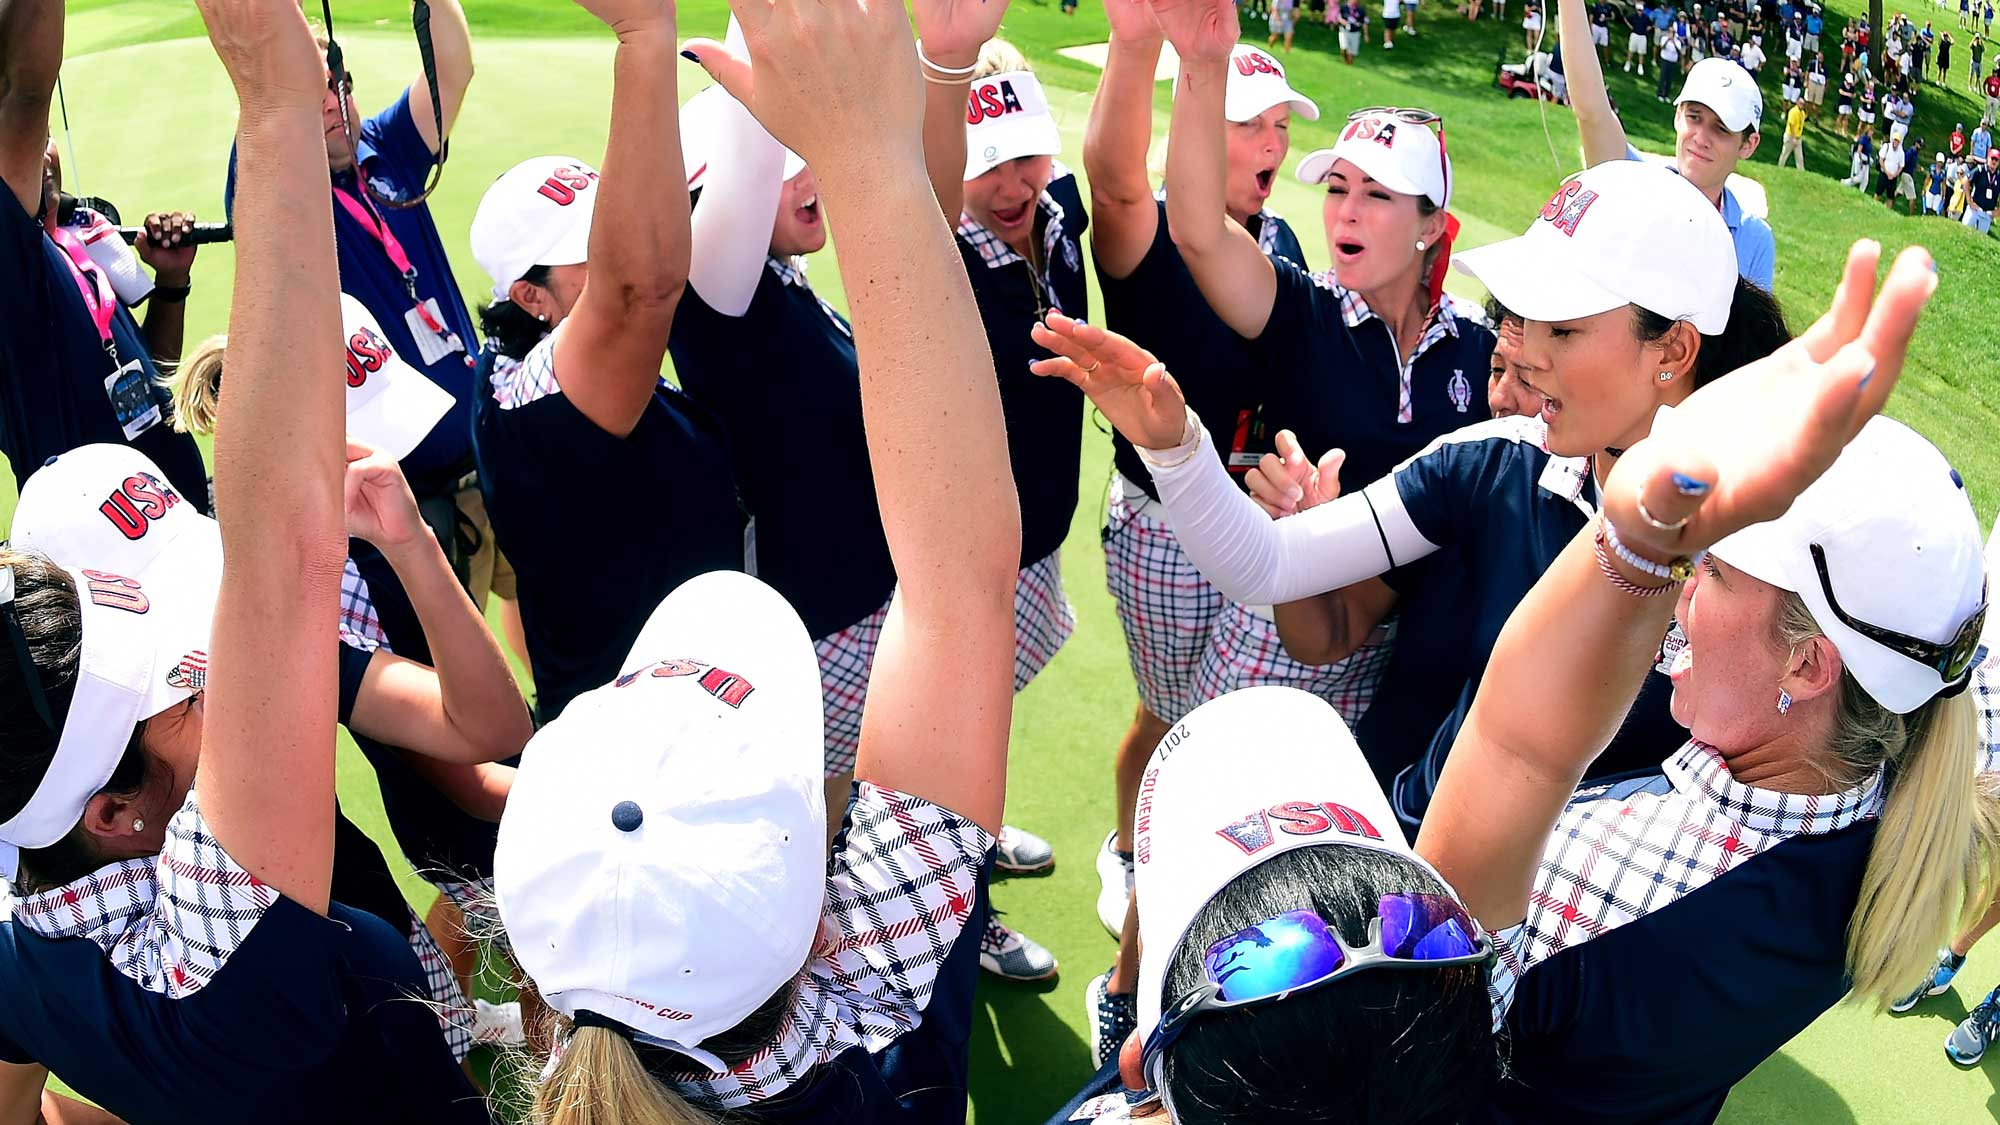 Team USA Wins Solheim Cup, Defeats Team Europe 16 1/2 - 11 1/2